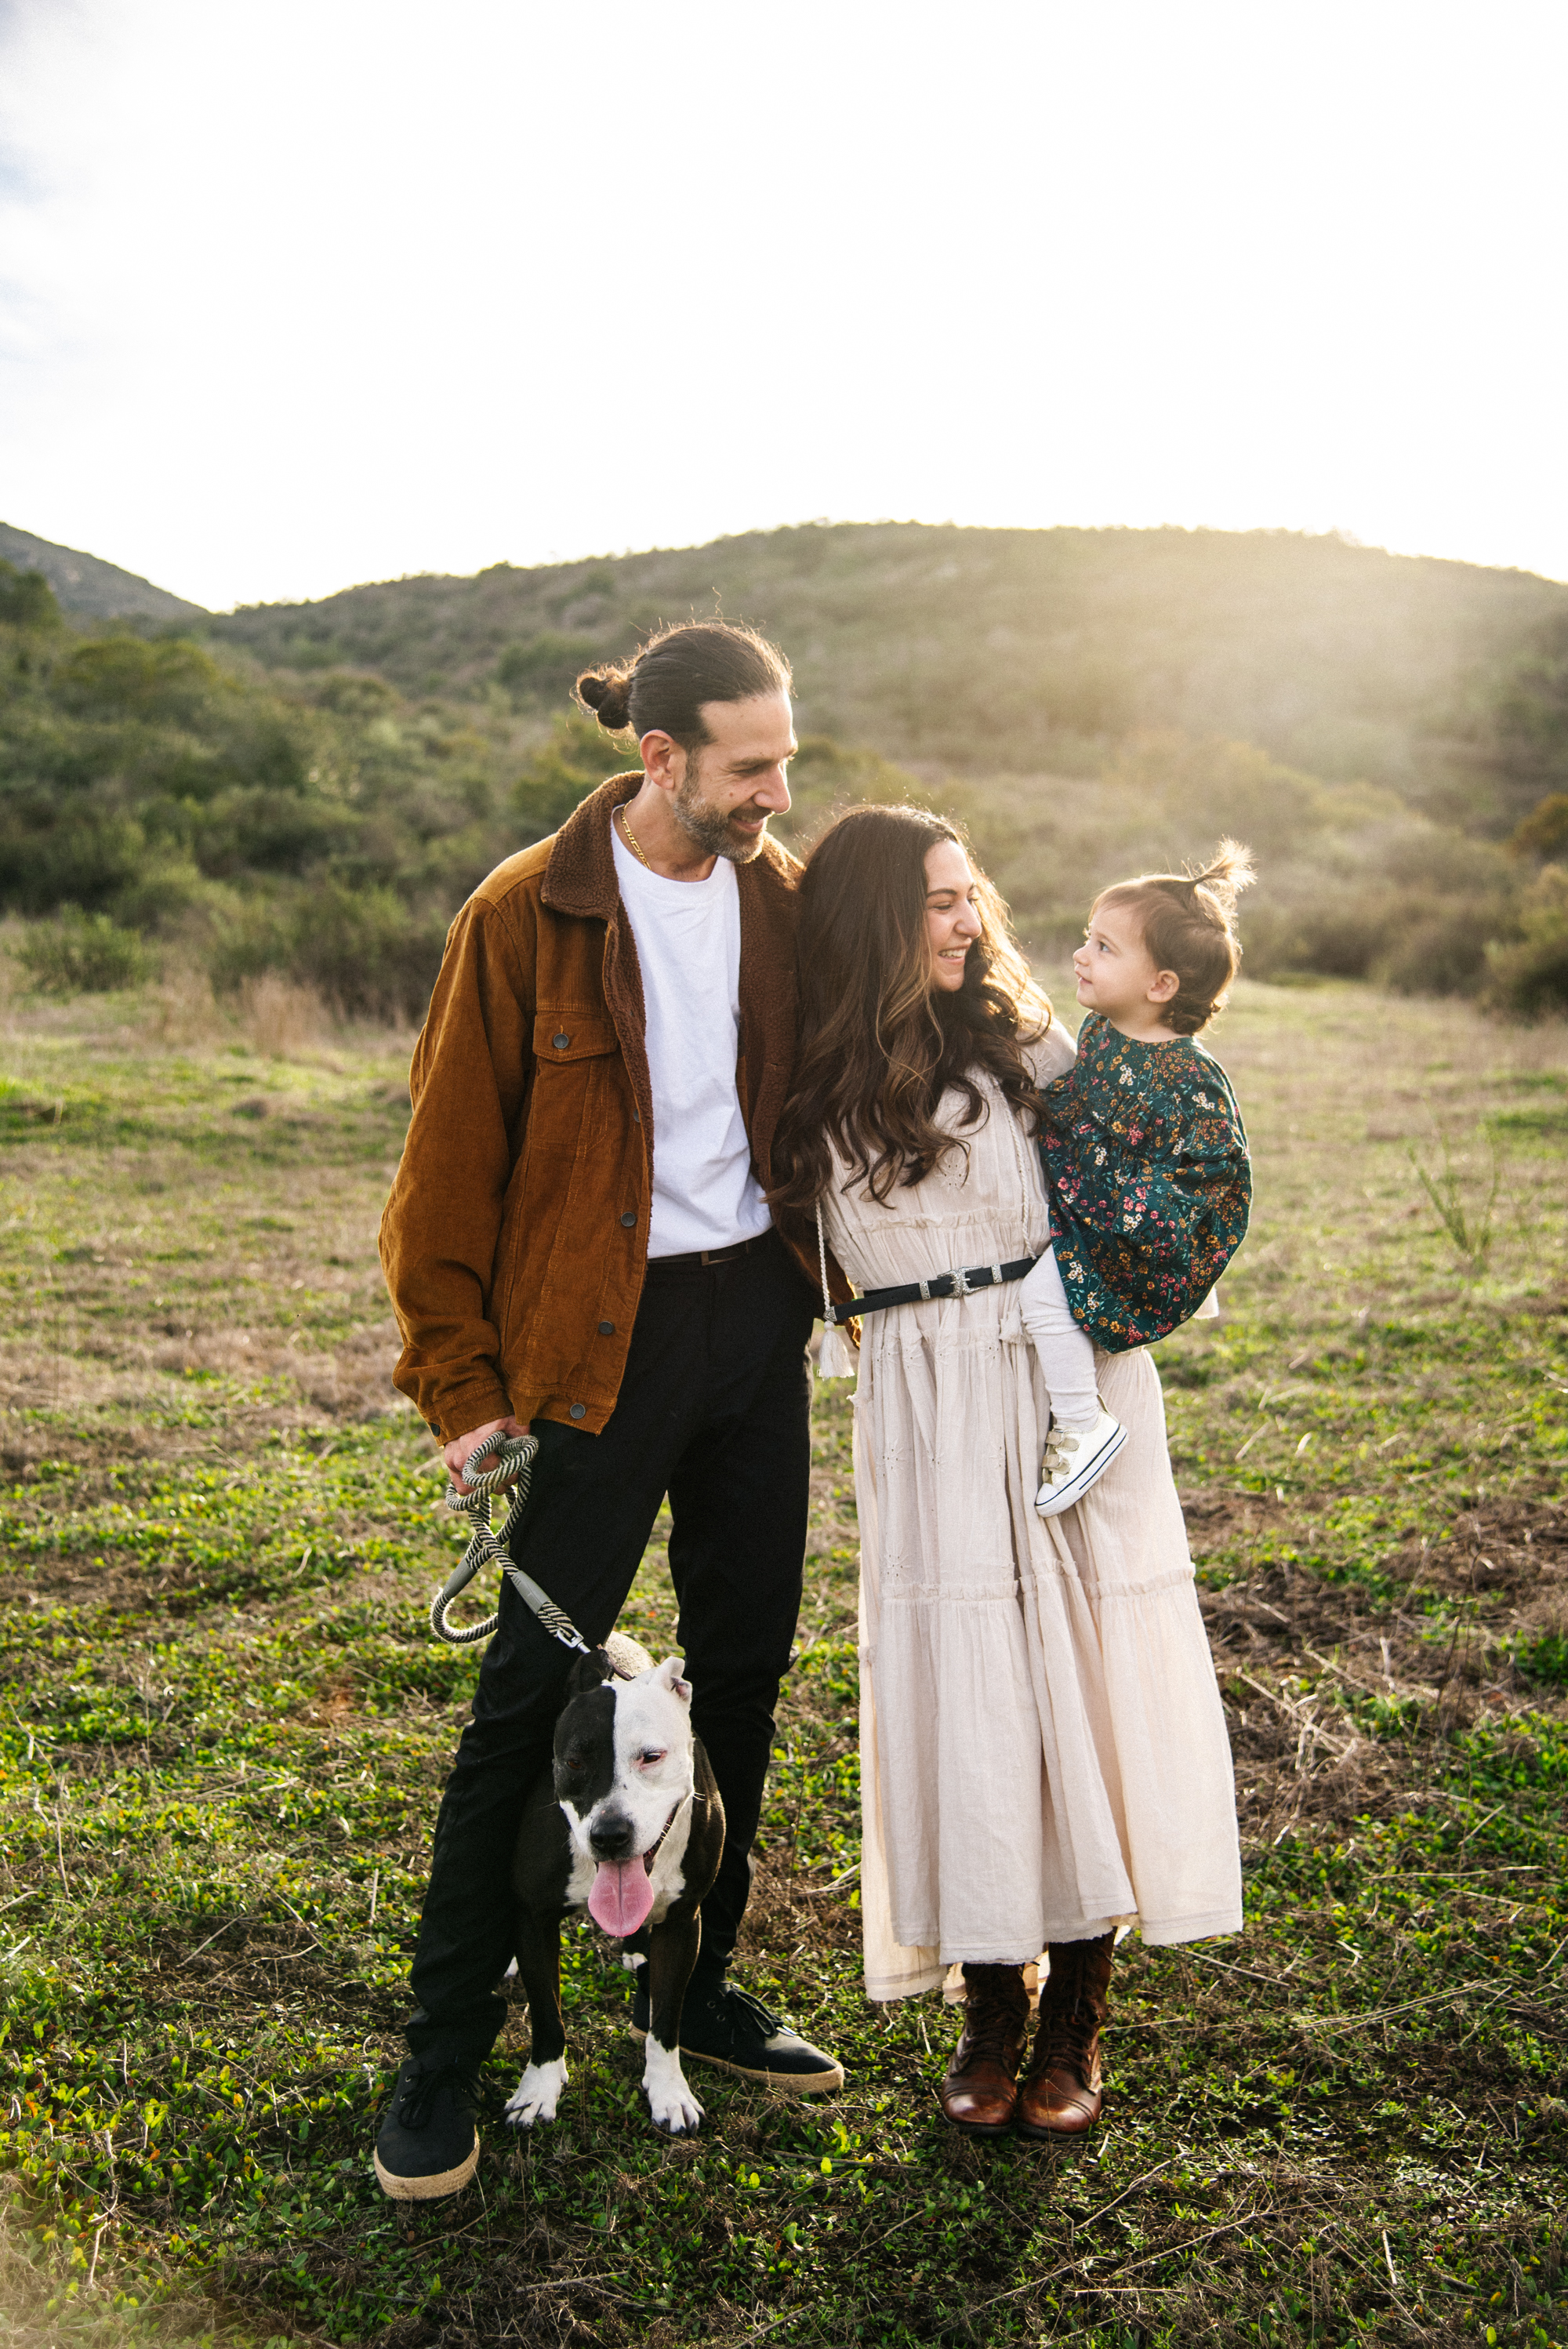 SamErica Studios - San Diego Family Photographer - Family Session at Mission Trails-37.jpg